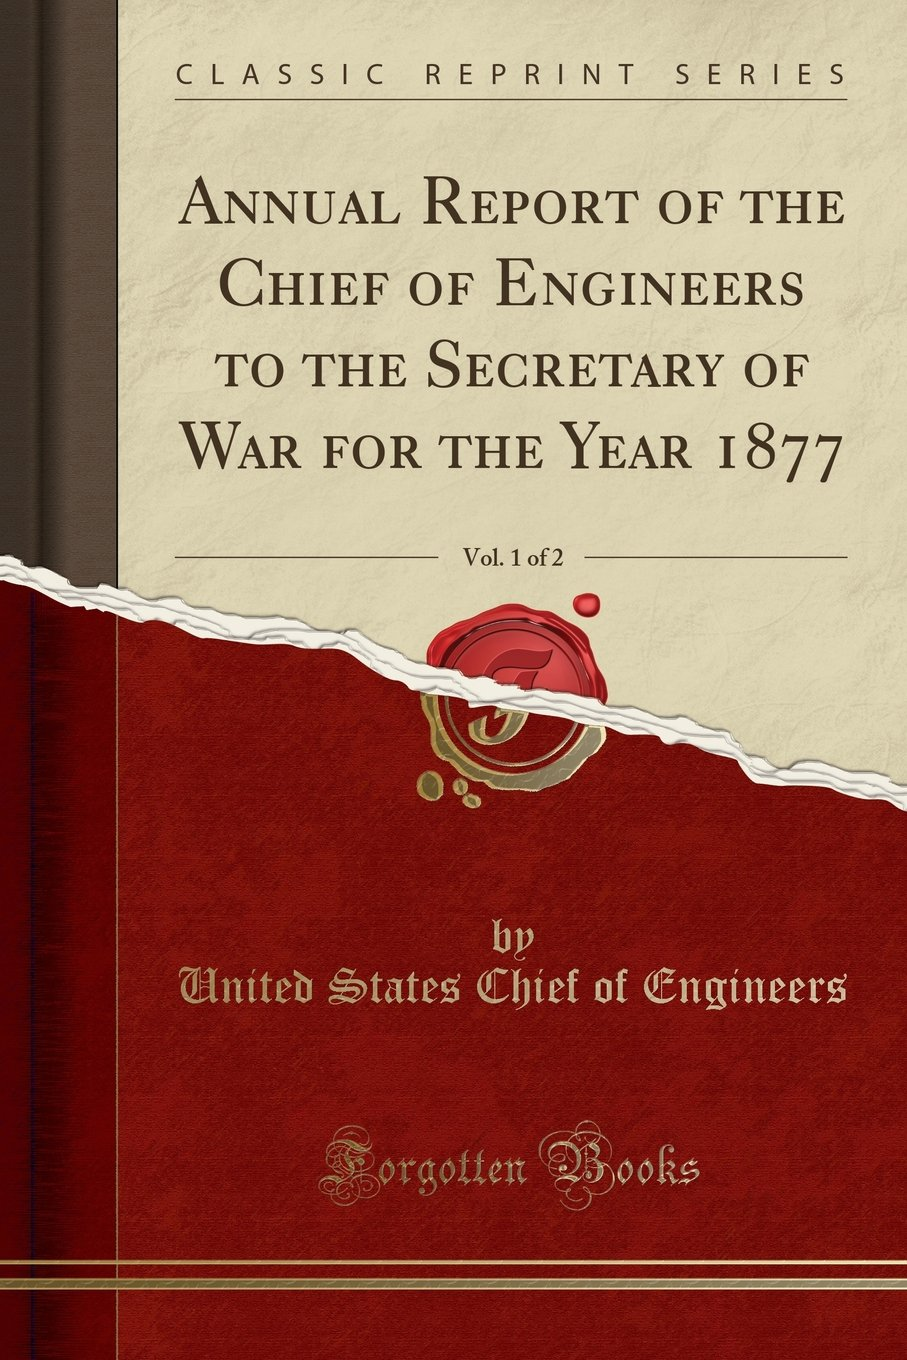 Annual Report of the Chief of Engineers to the Secretary of War for the Year 1877, Vol. 1 of 2 (Classic Reprint) pdf